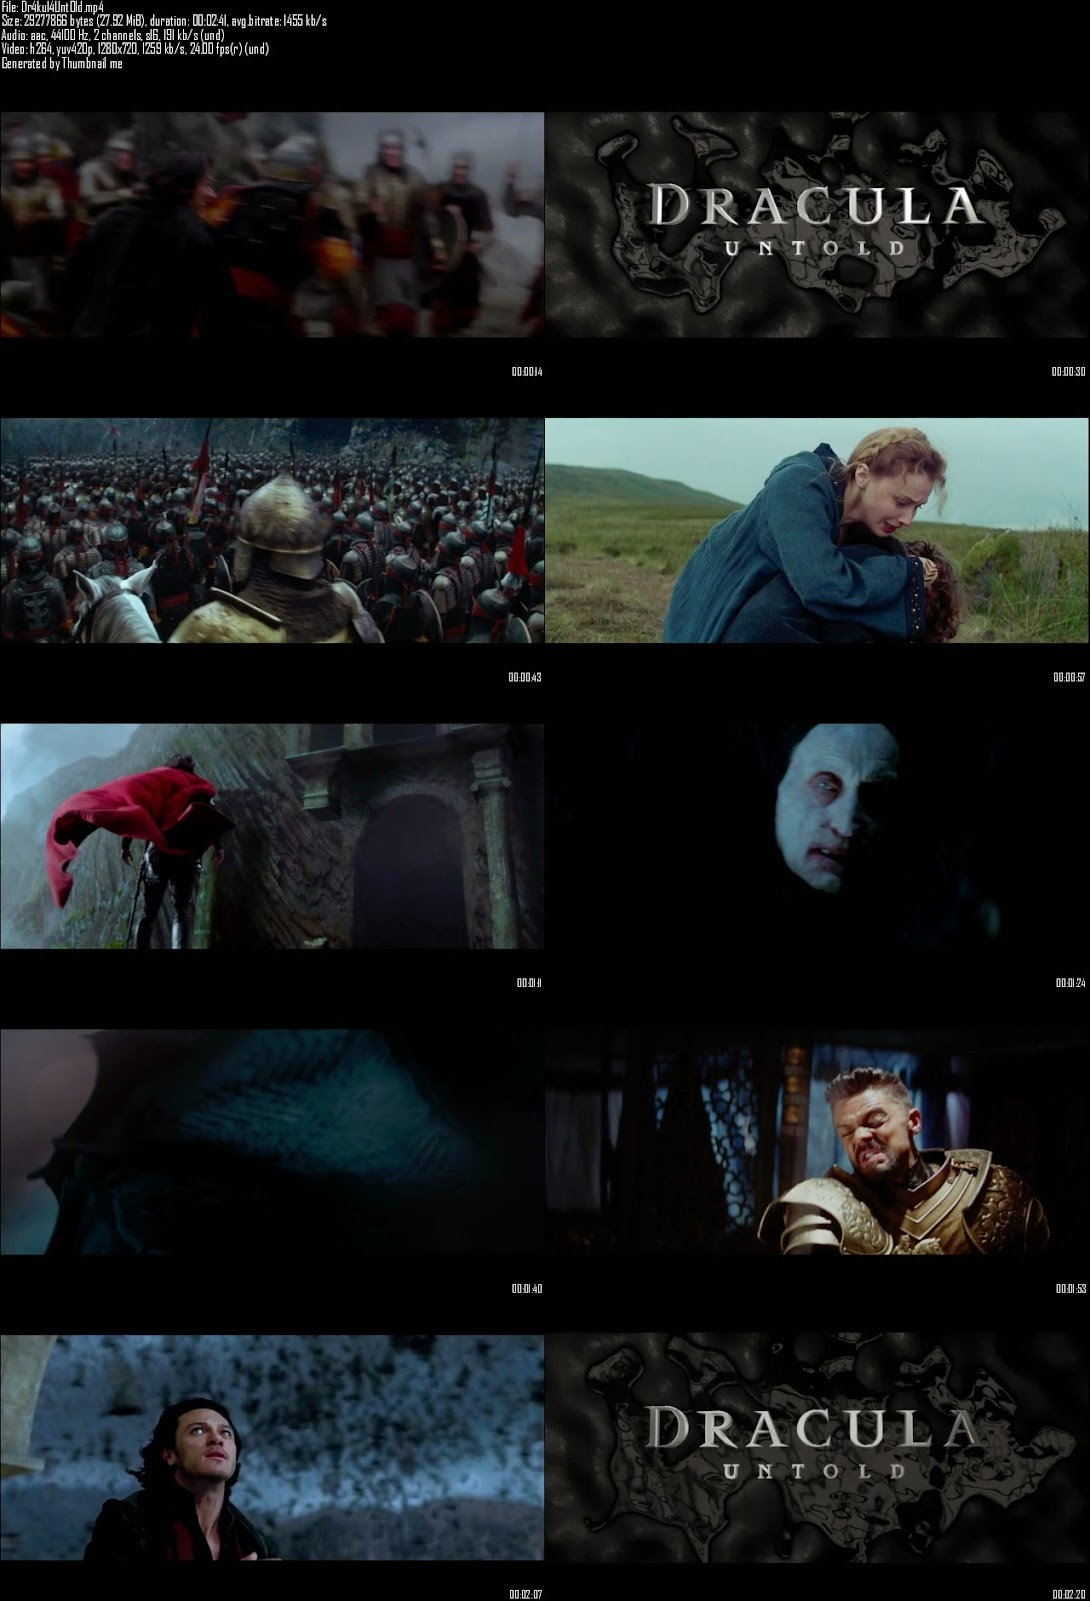 Mediafire Resumable Download Link For Teaser Promo Of Dracula Untold (2014)